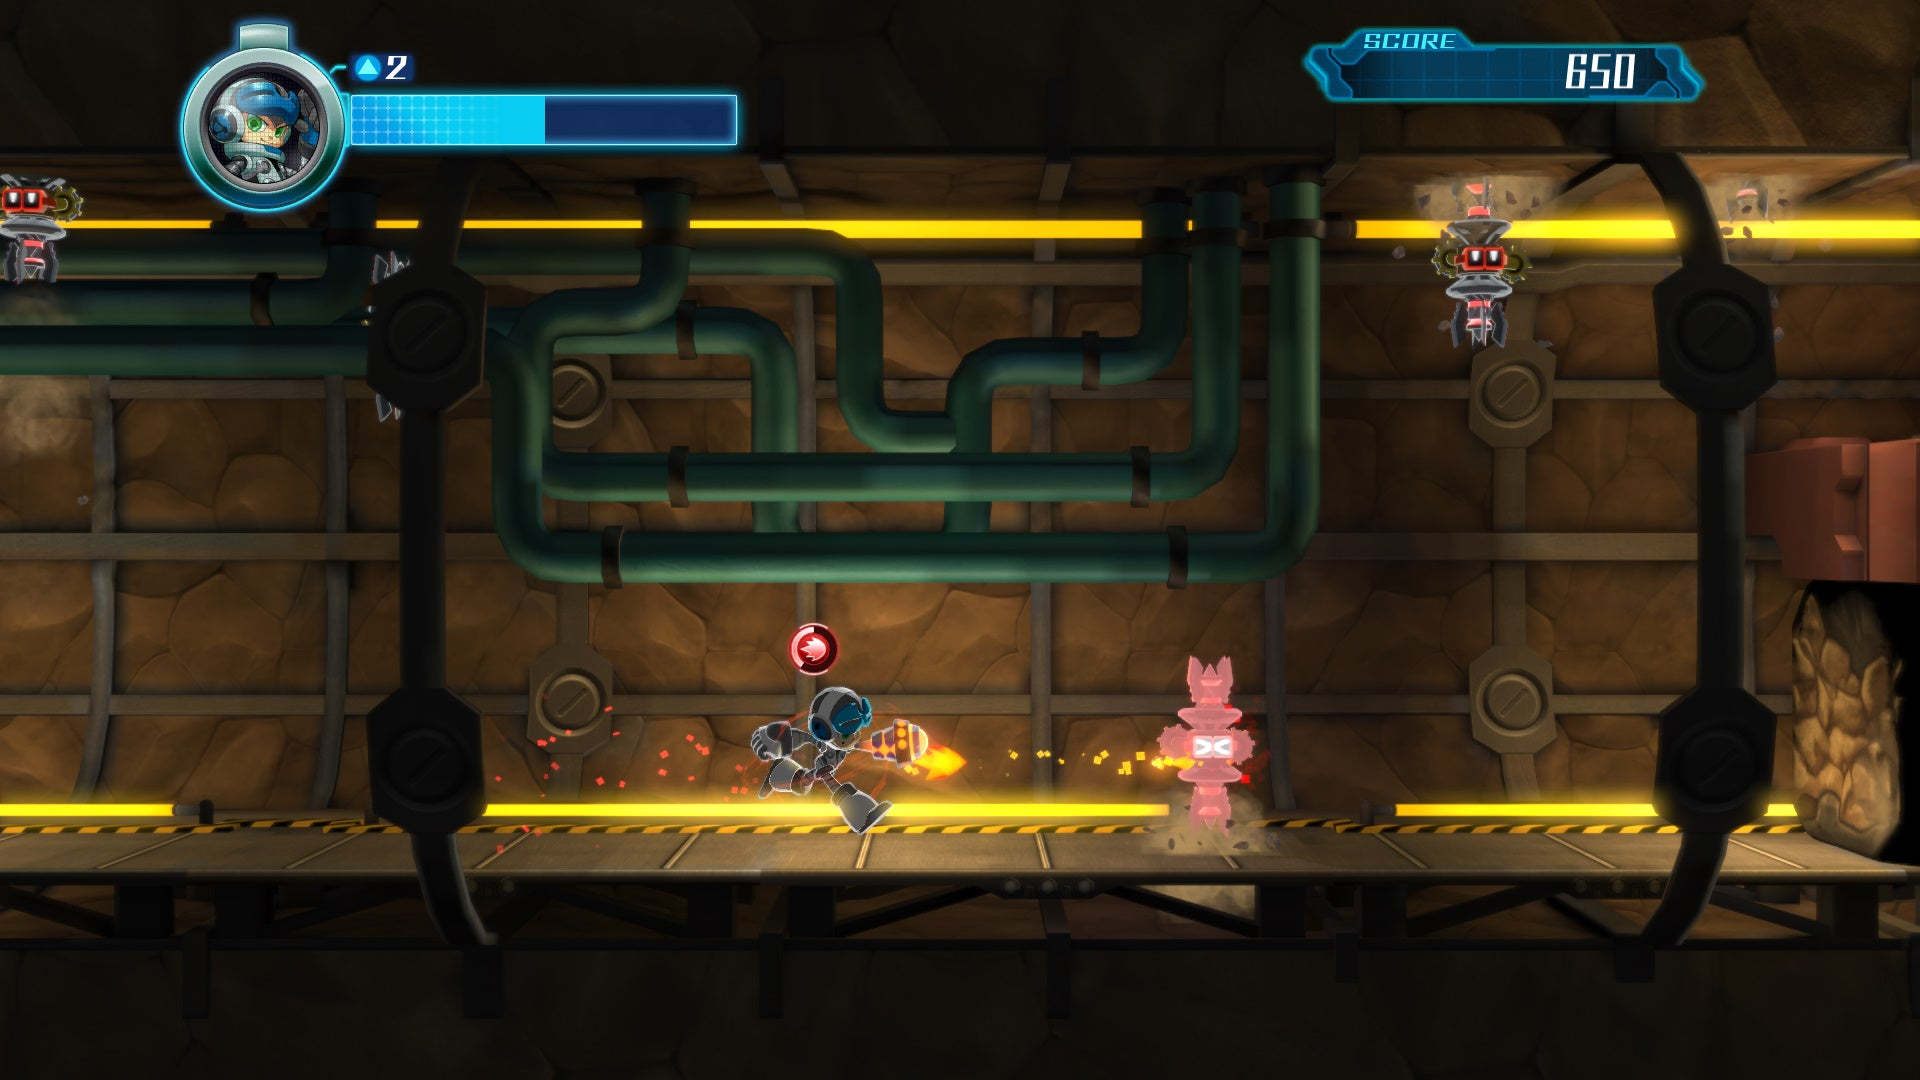 Comcept Claims Mighty No. 9 Will Ship In February